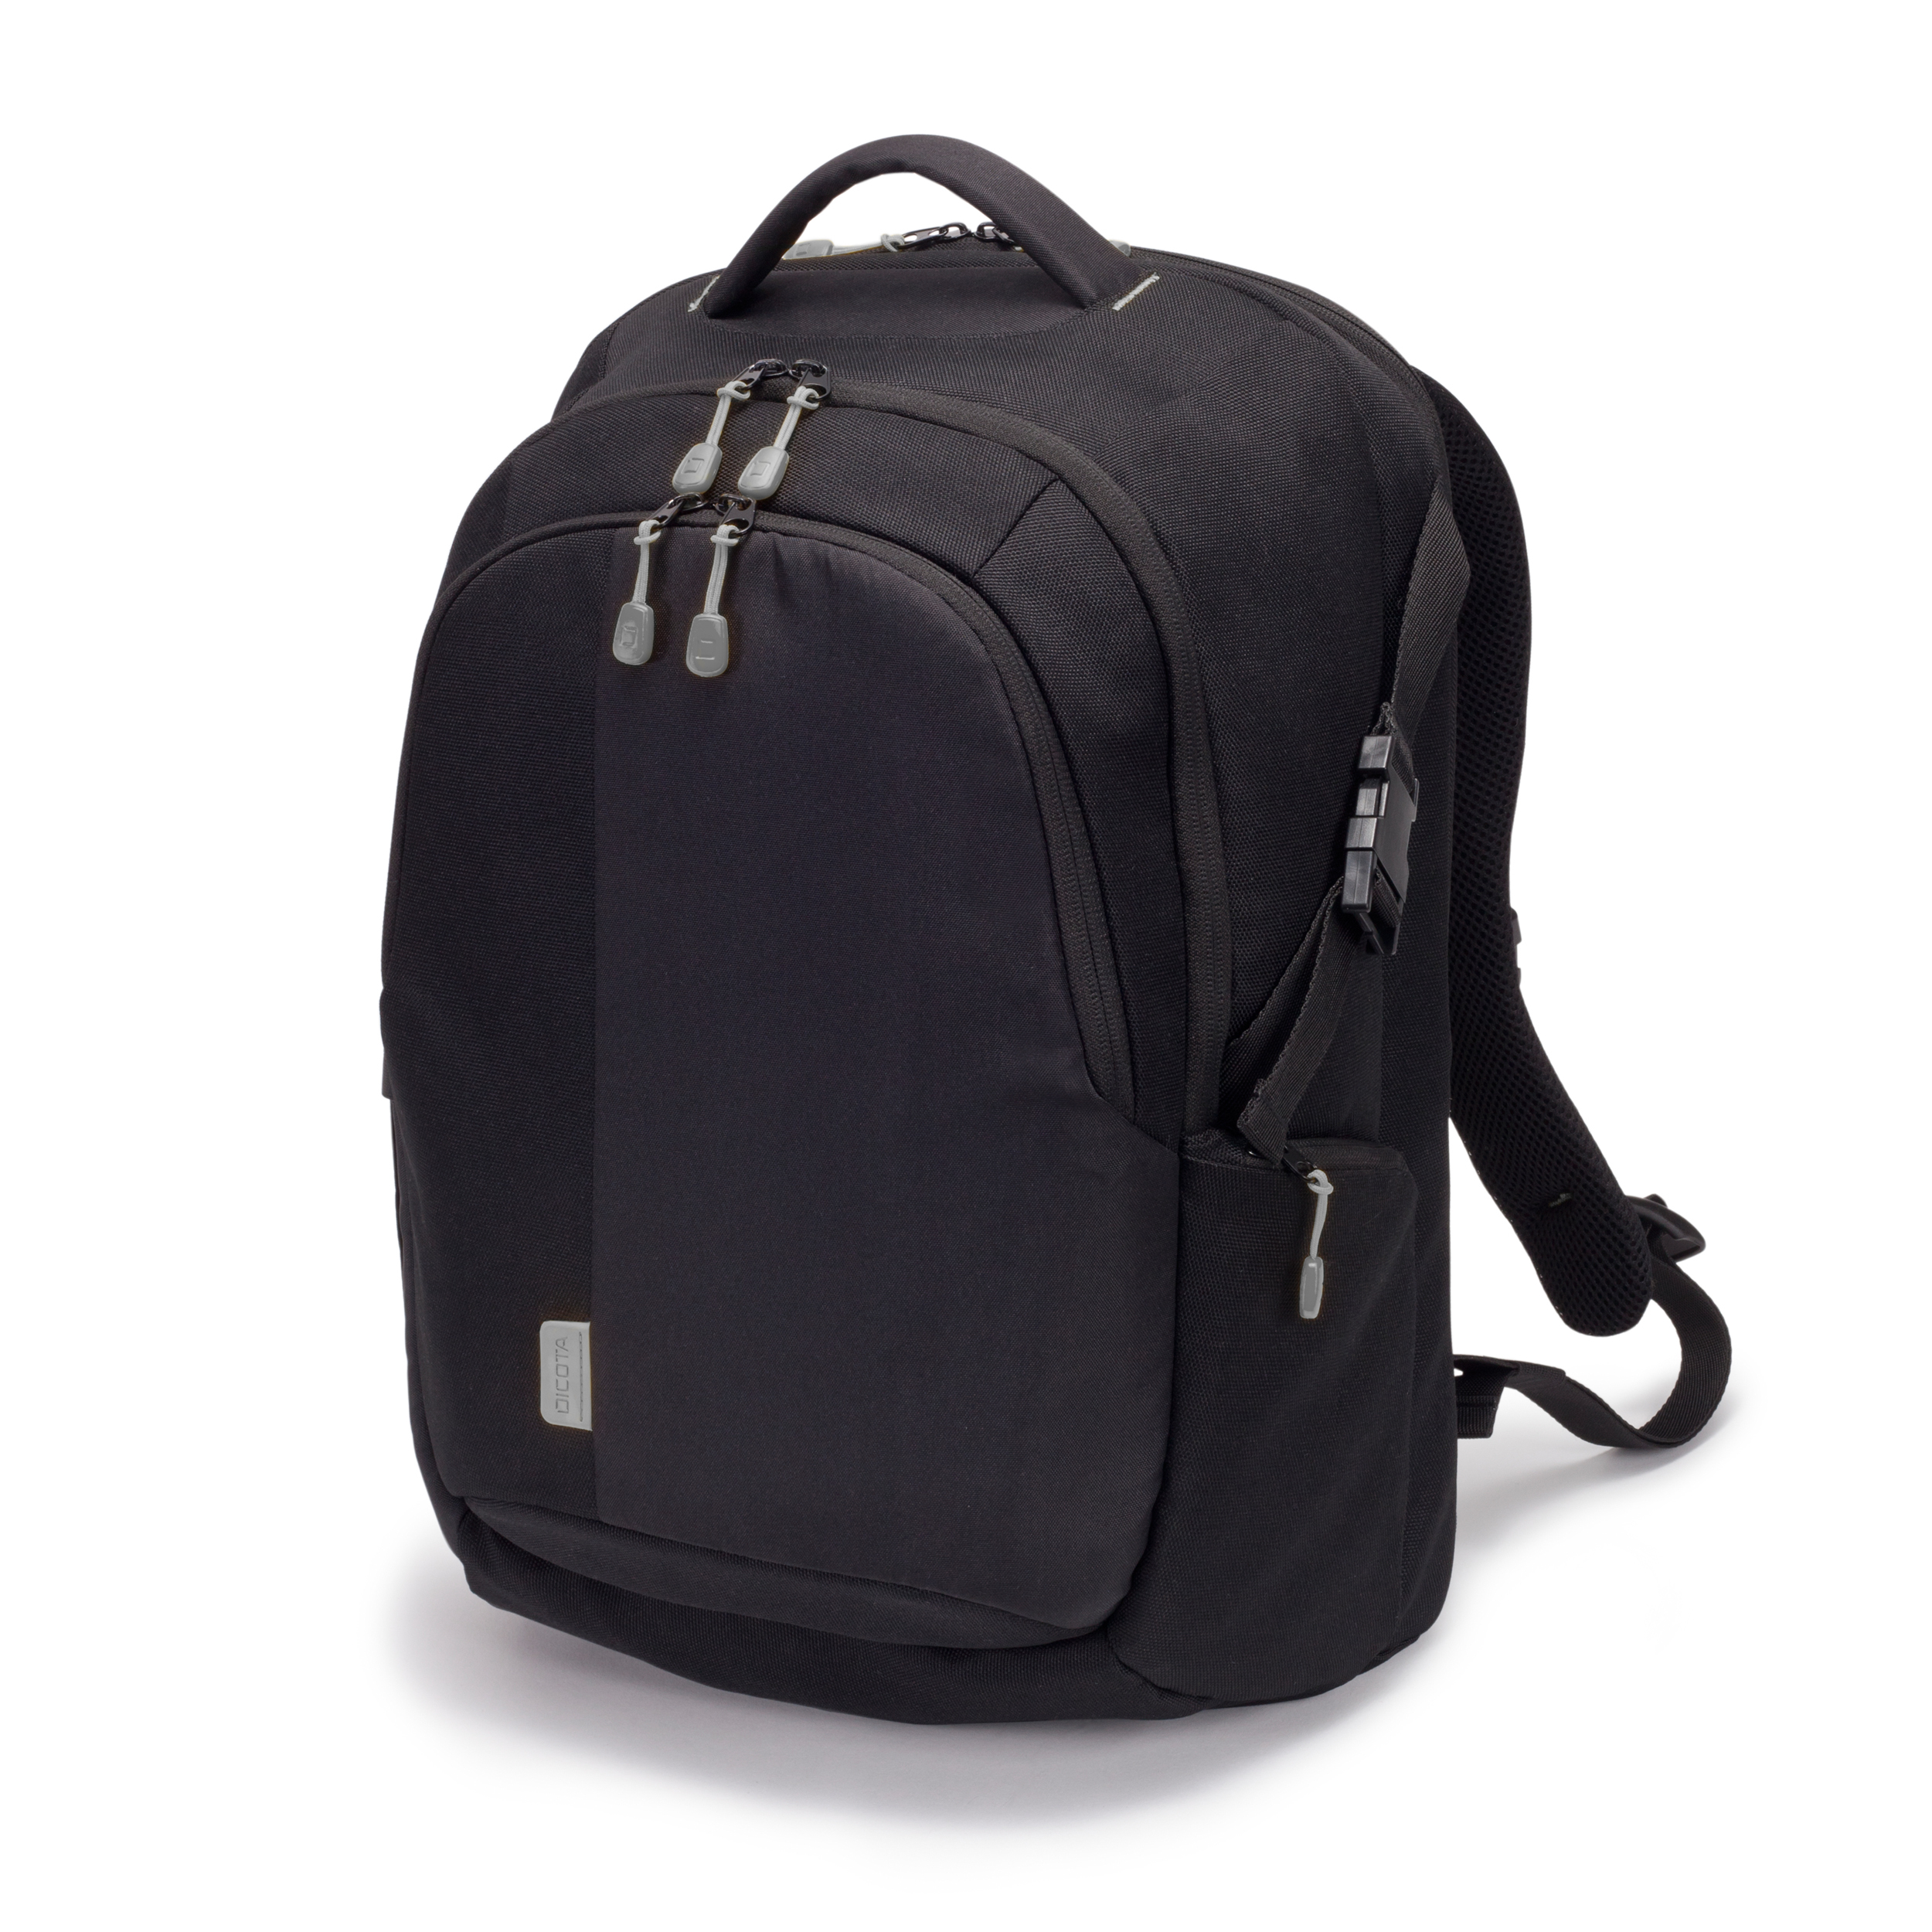 "Dicota Backpack ECO Laptop Bag 15.6"" BLACK Comes With A Removable Notebook Case With HDF (High Density Foam) Protection, With Hidden And Removable Rain Cover. It Is Mainly Madeof Recycled PET - C2000"